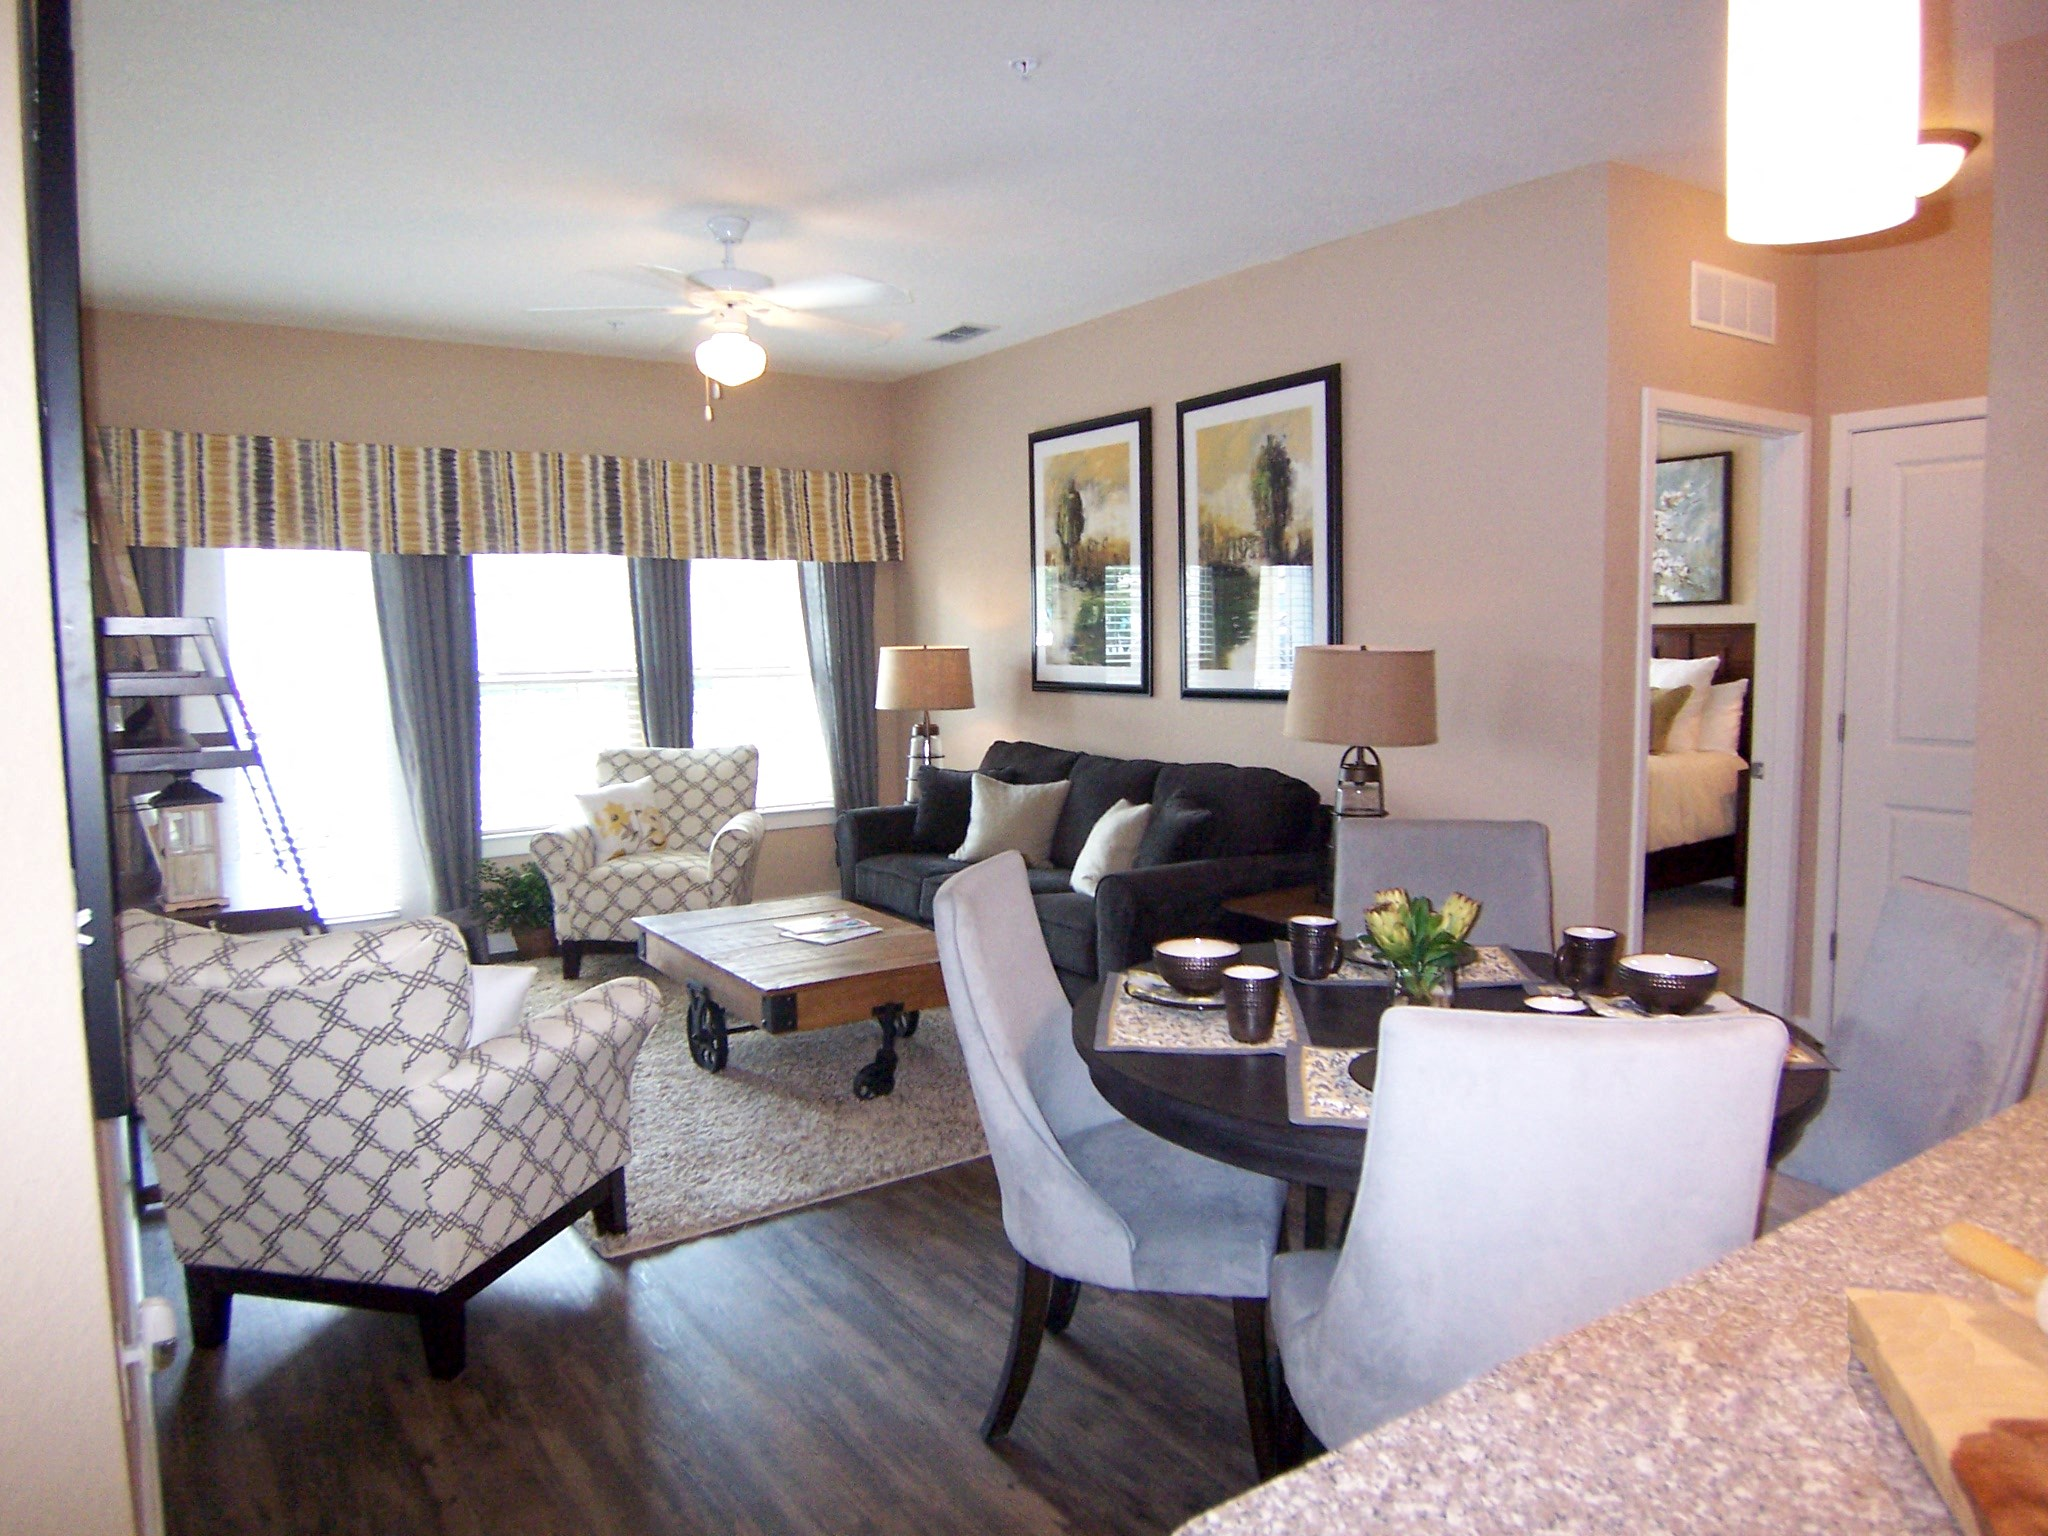 Living Room at Park Place Apartments in Oviedo, FL